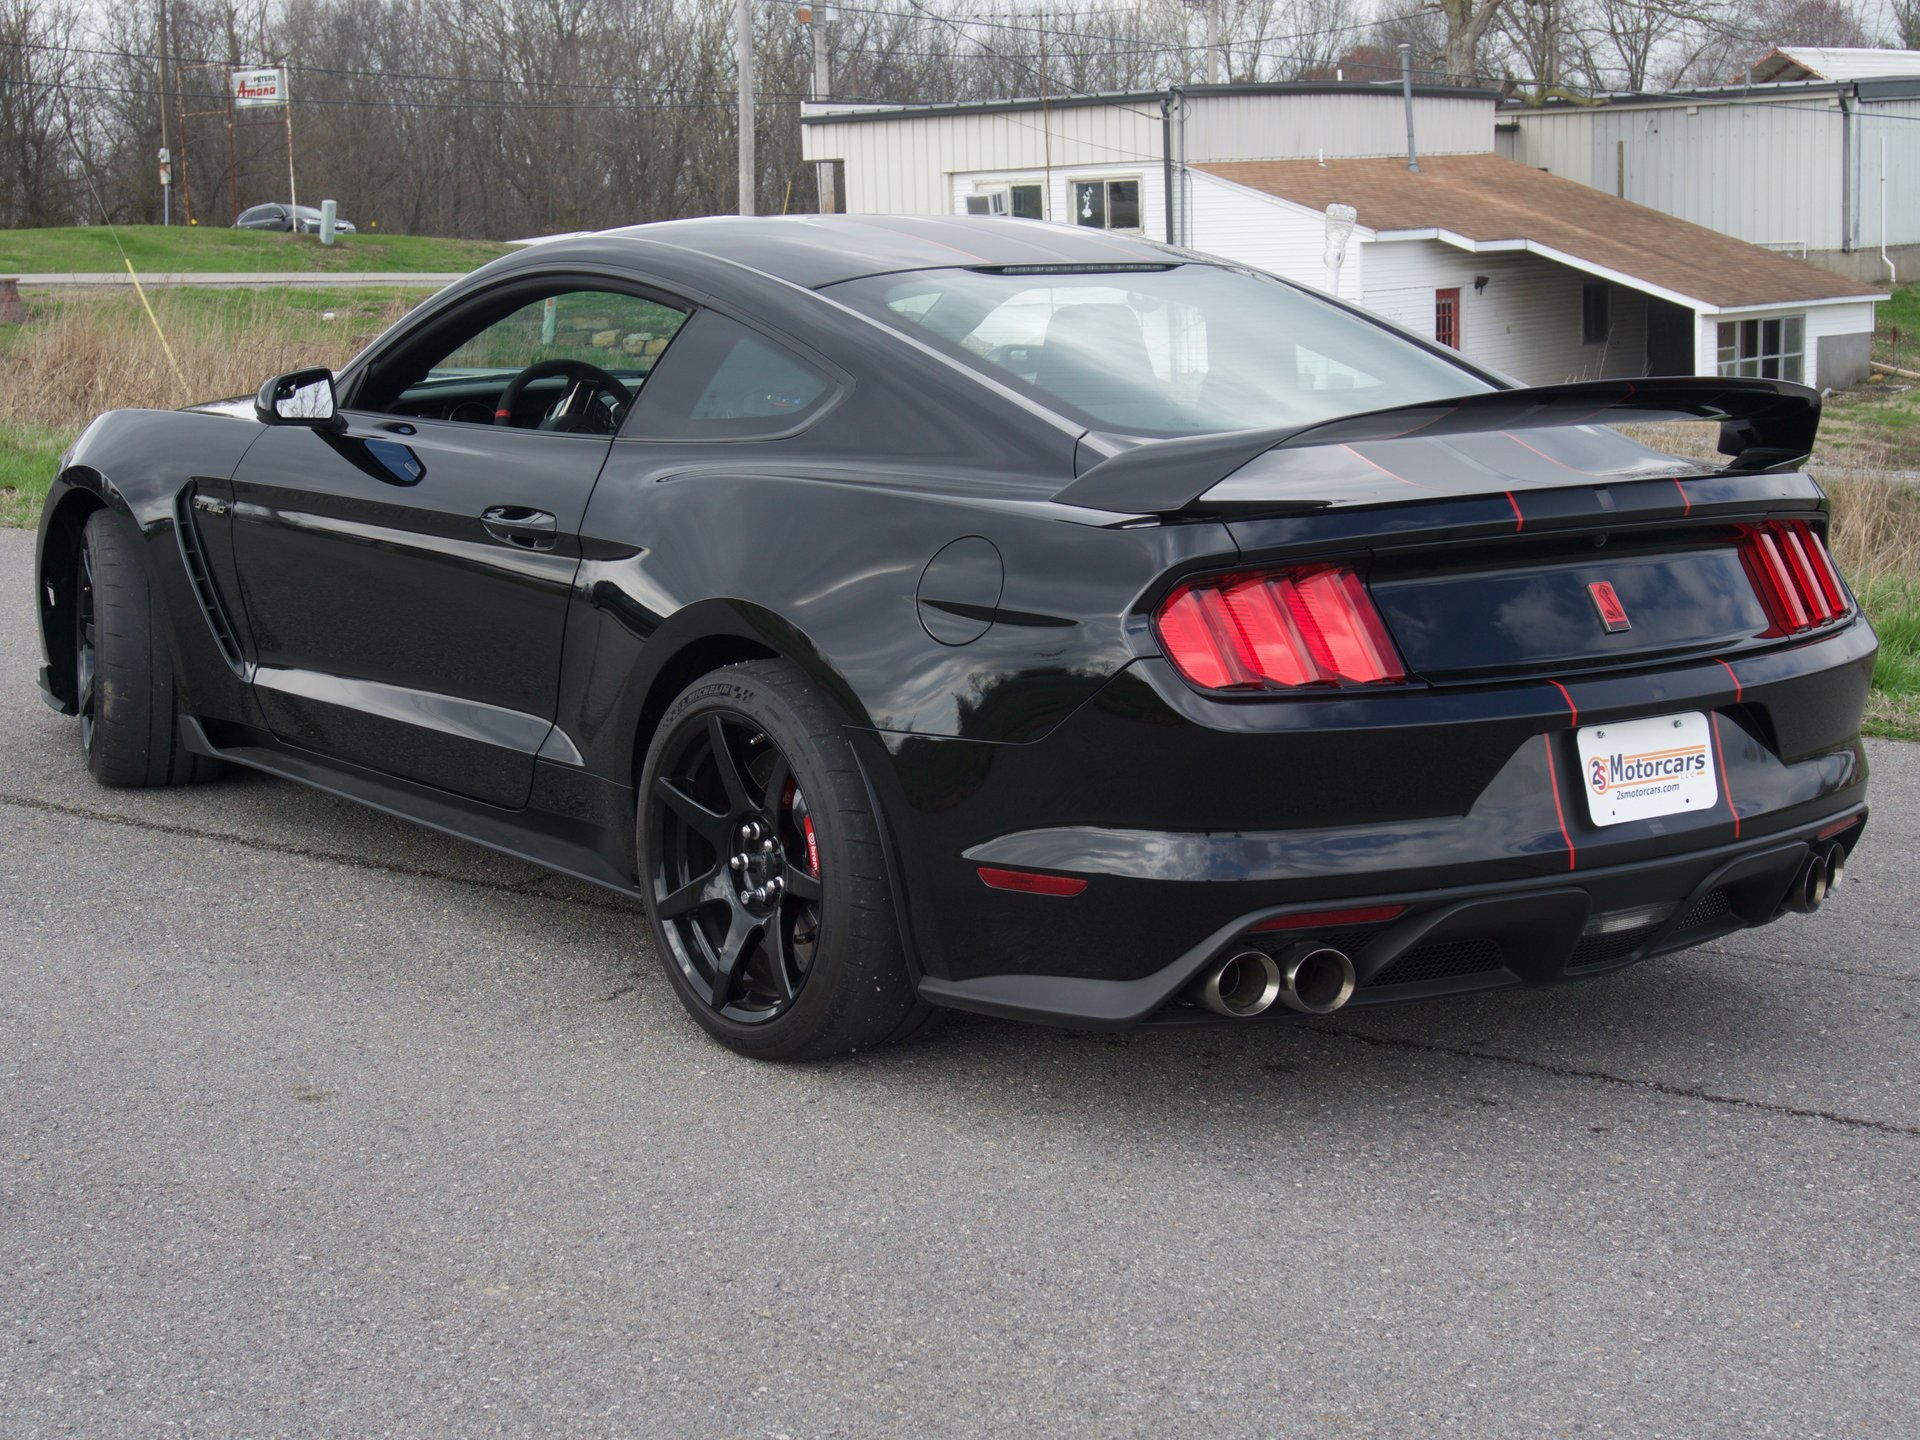 Gt350r For Sale >> 2016 Shelby Gt350r For Sale 84287 Mcg